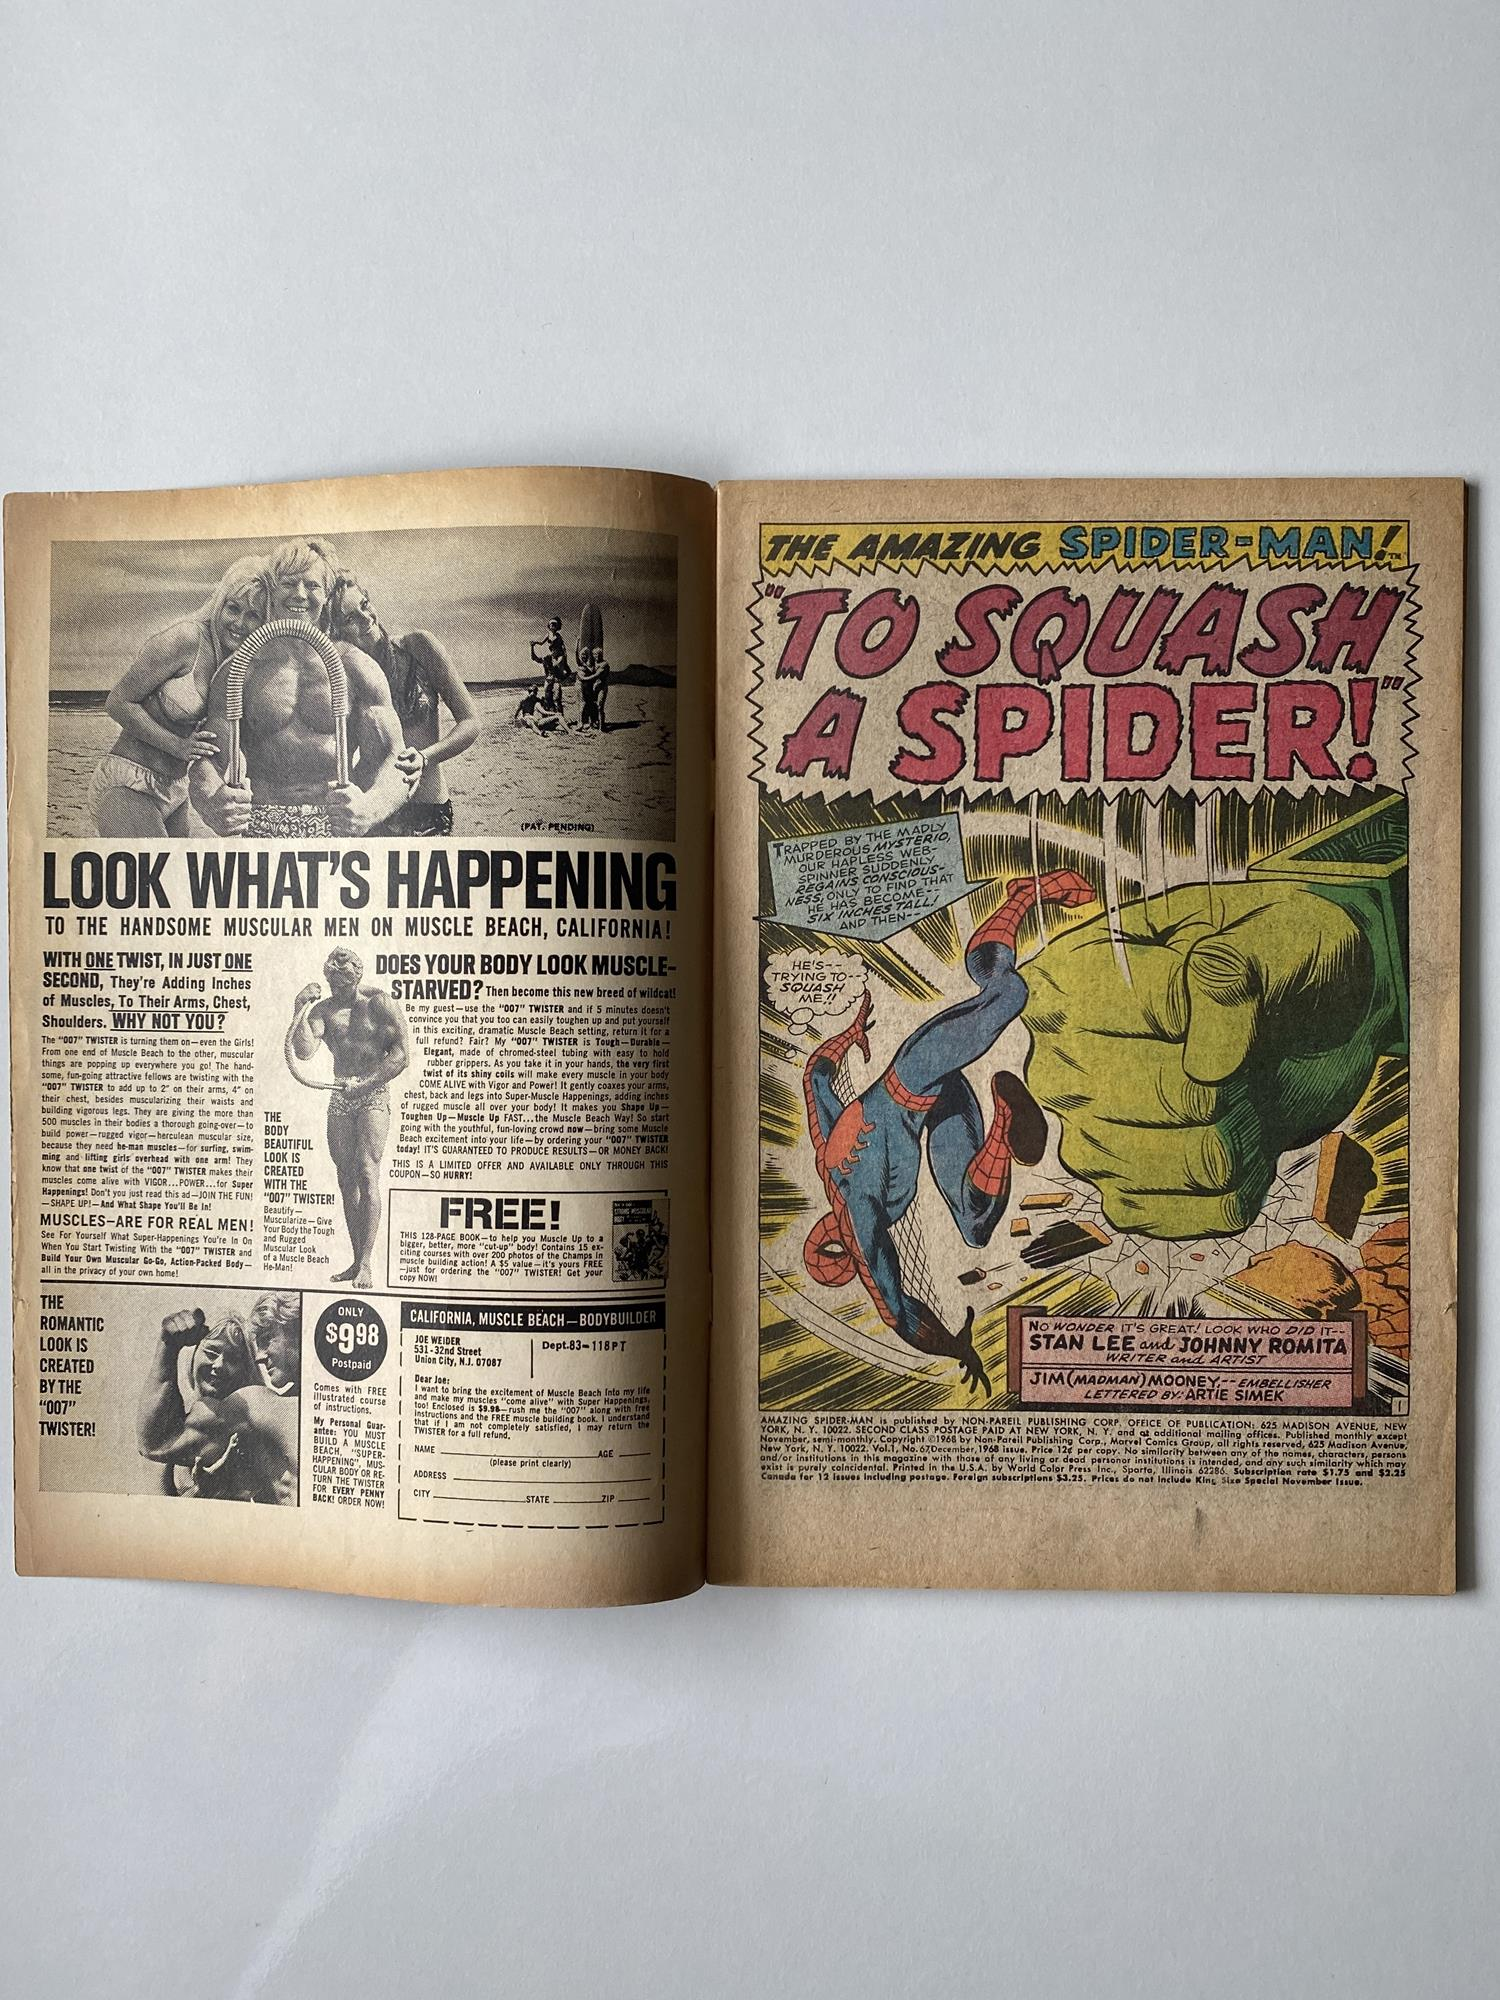 Lot 28 - AMAZING SPIDER-MAN # 67 (1968 - MARVEL - Cents Copy) - Spider-Man battles Mysterio + First